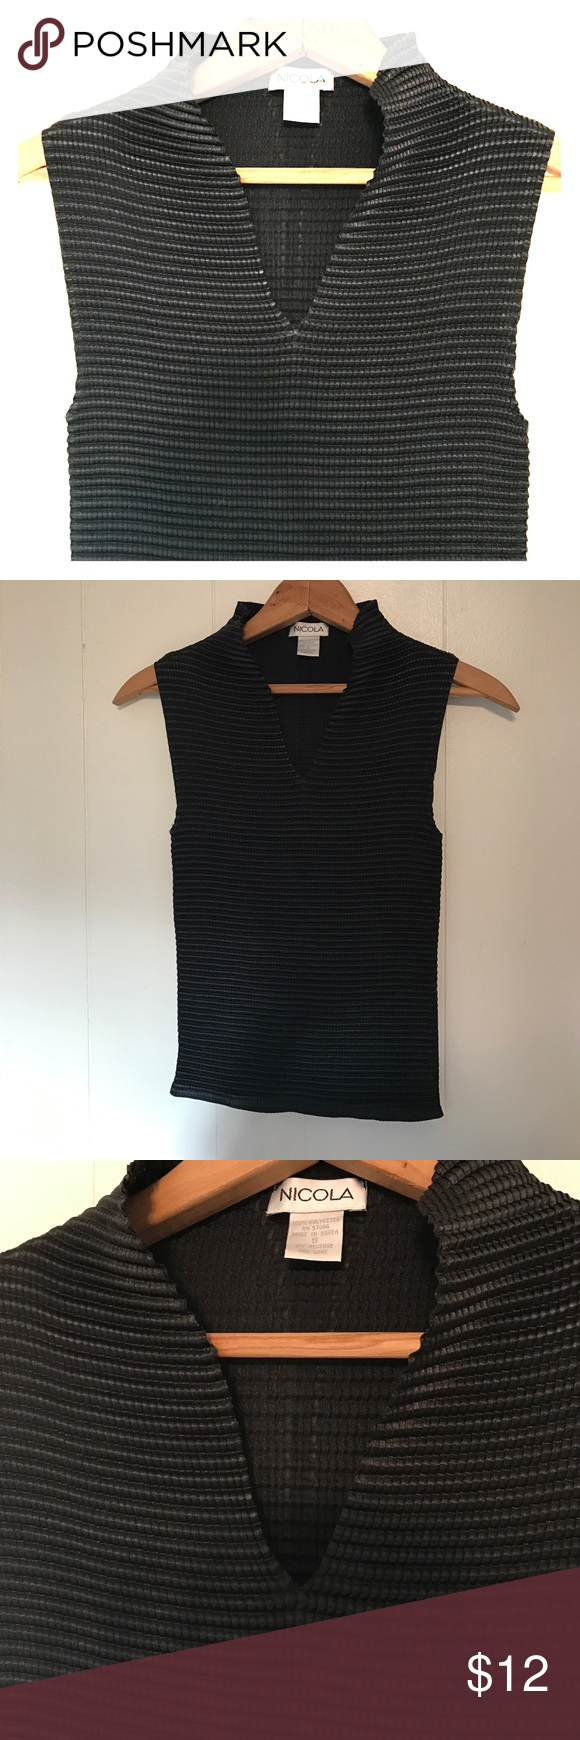 V-neck short sleeve top Chic top. Excellent condition. Perfect for layering as a camisole or on its own. This has a nice ripple design and sheen to the shirt. 100% polyester Nicola Tops